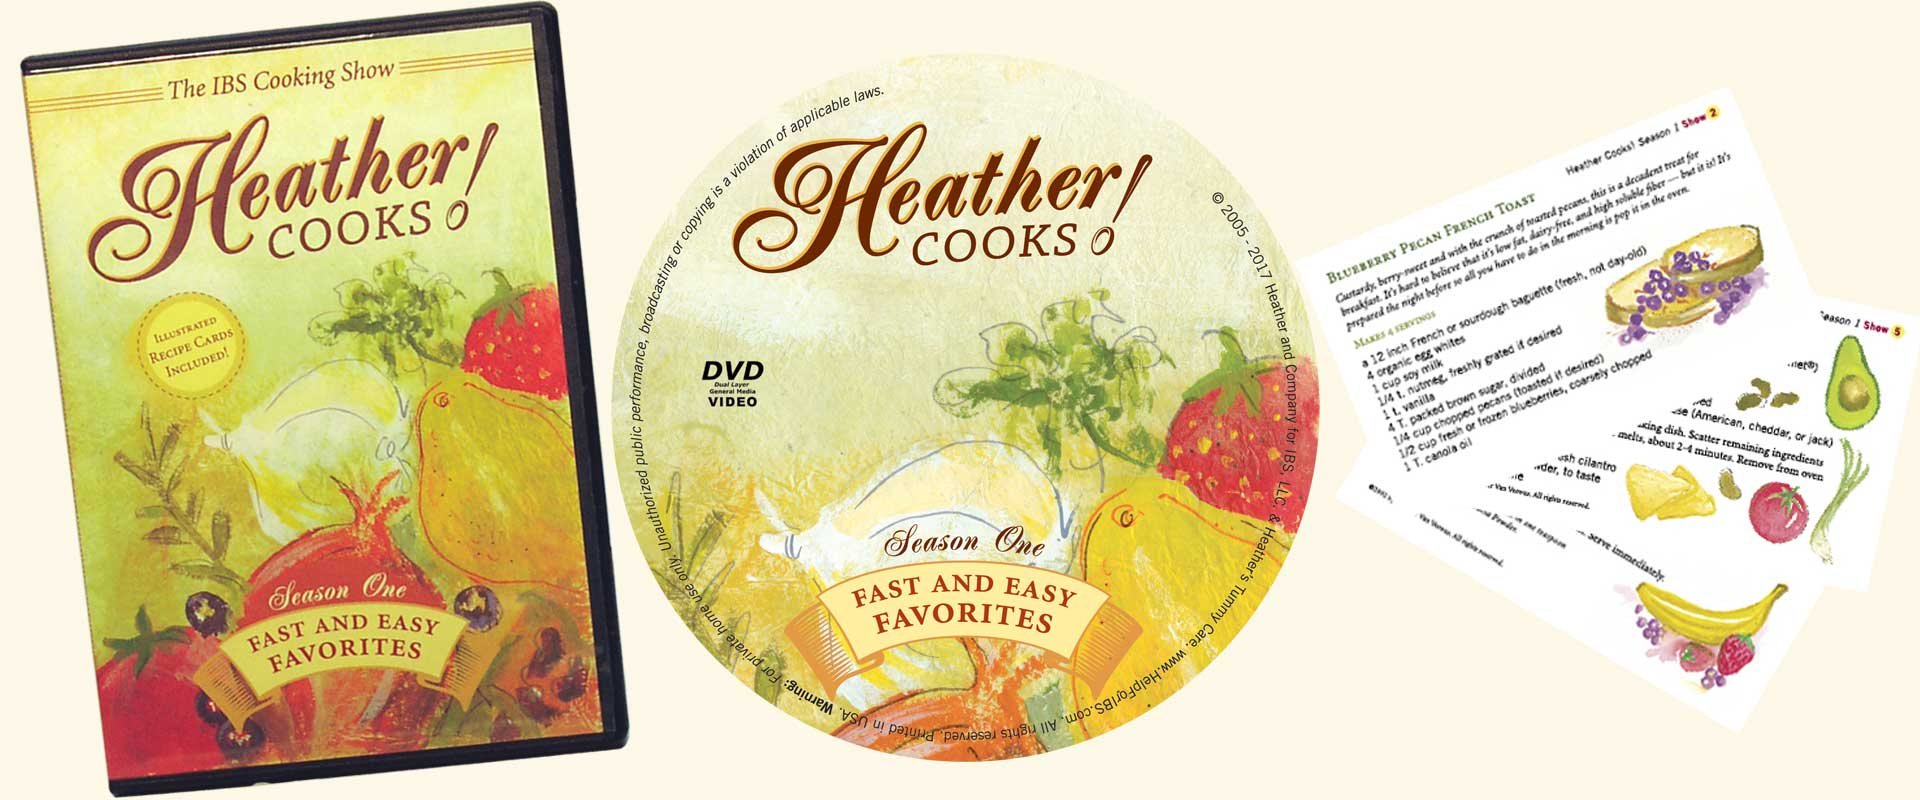 Heather cooks ibs cooking show dvd ibs cooking show dvd recipe cards forumfinder Gallery